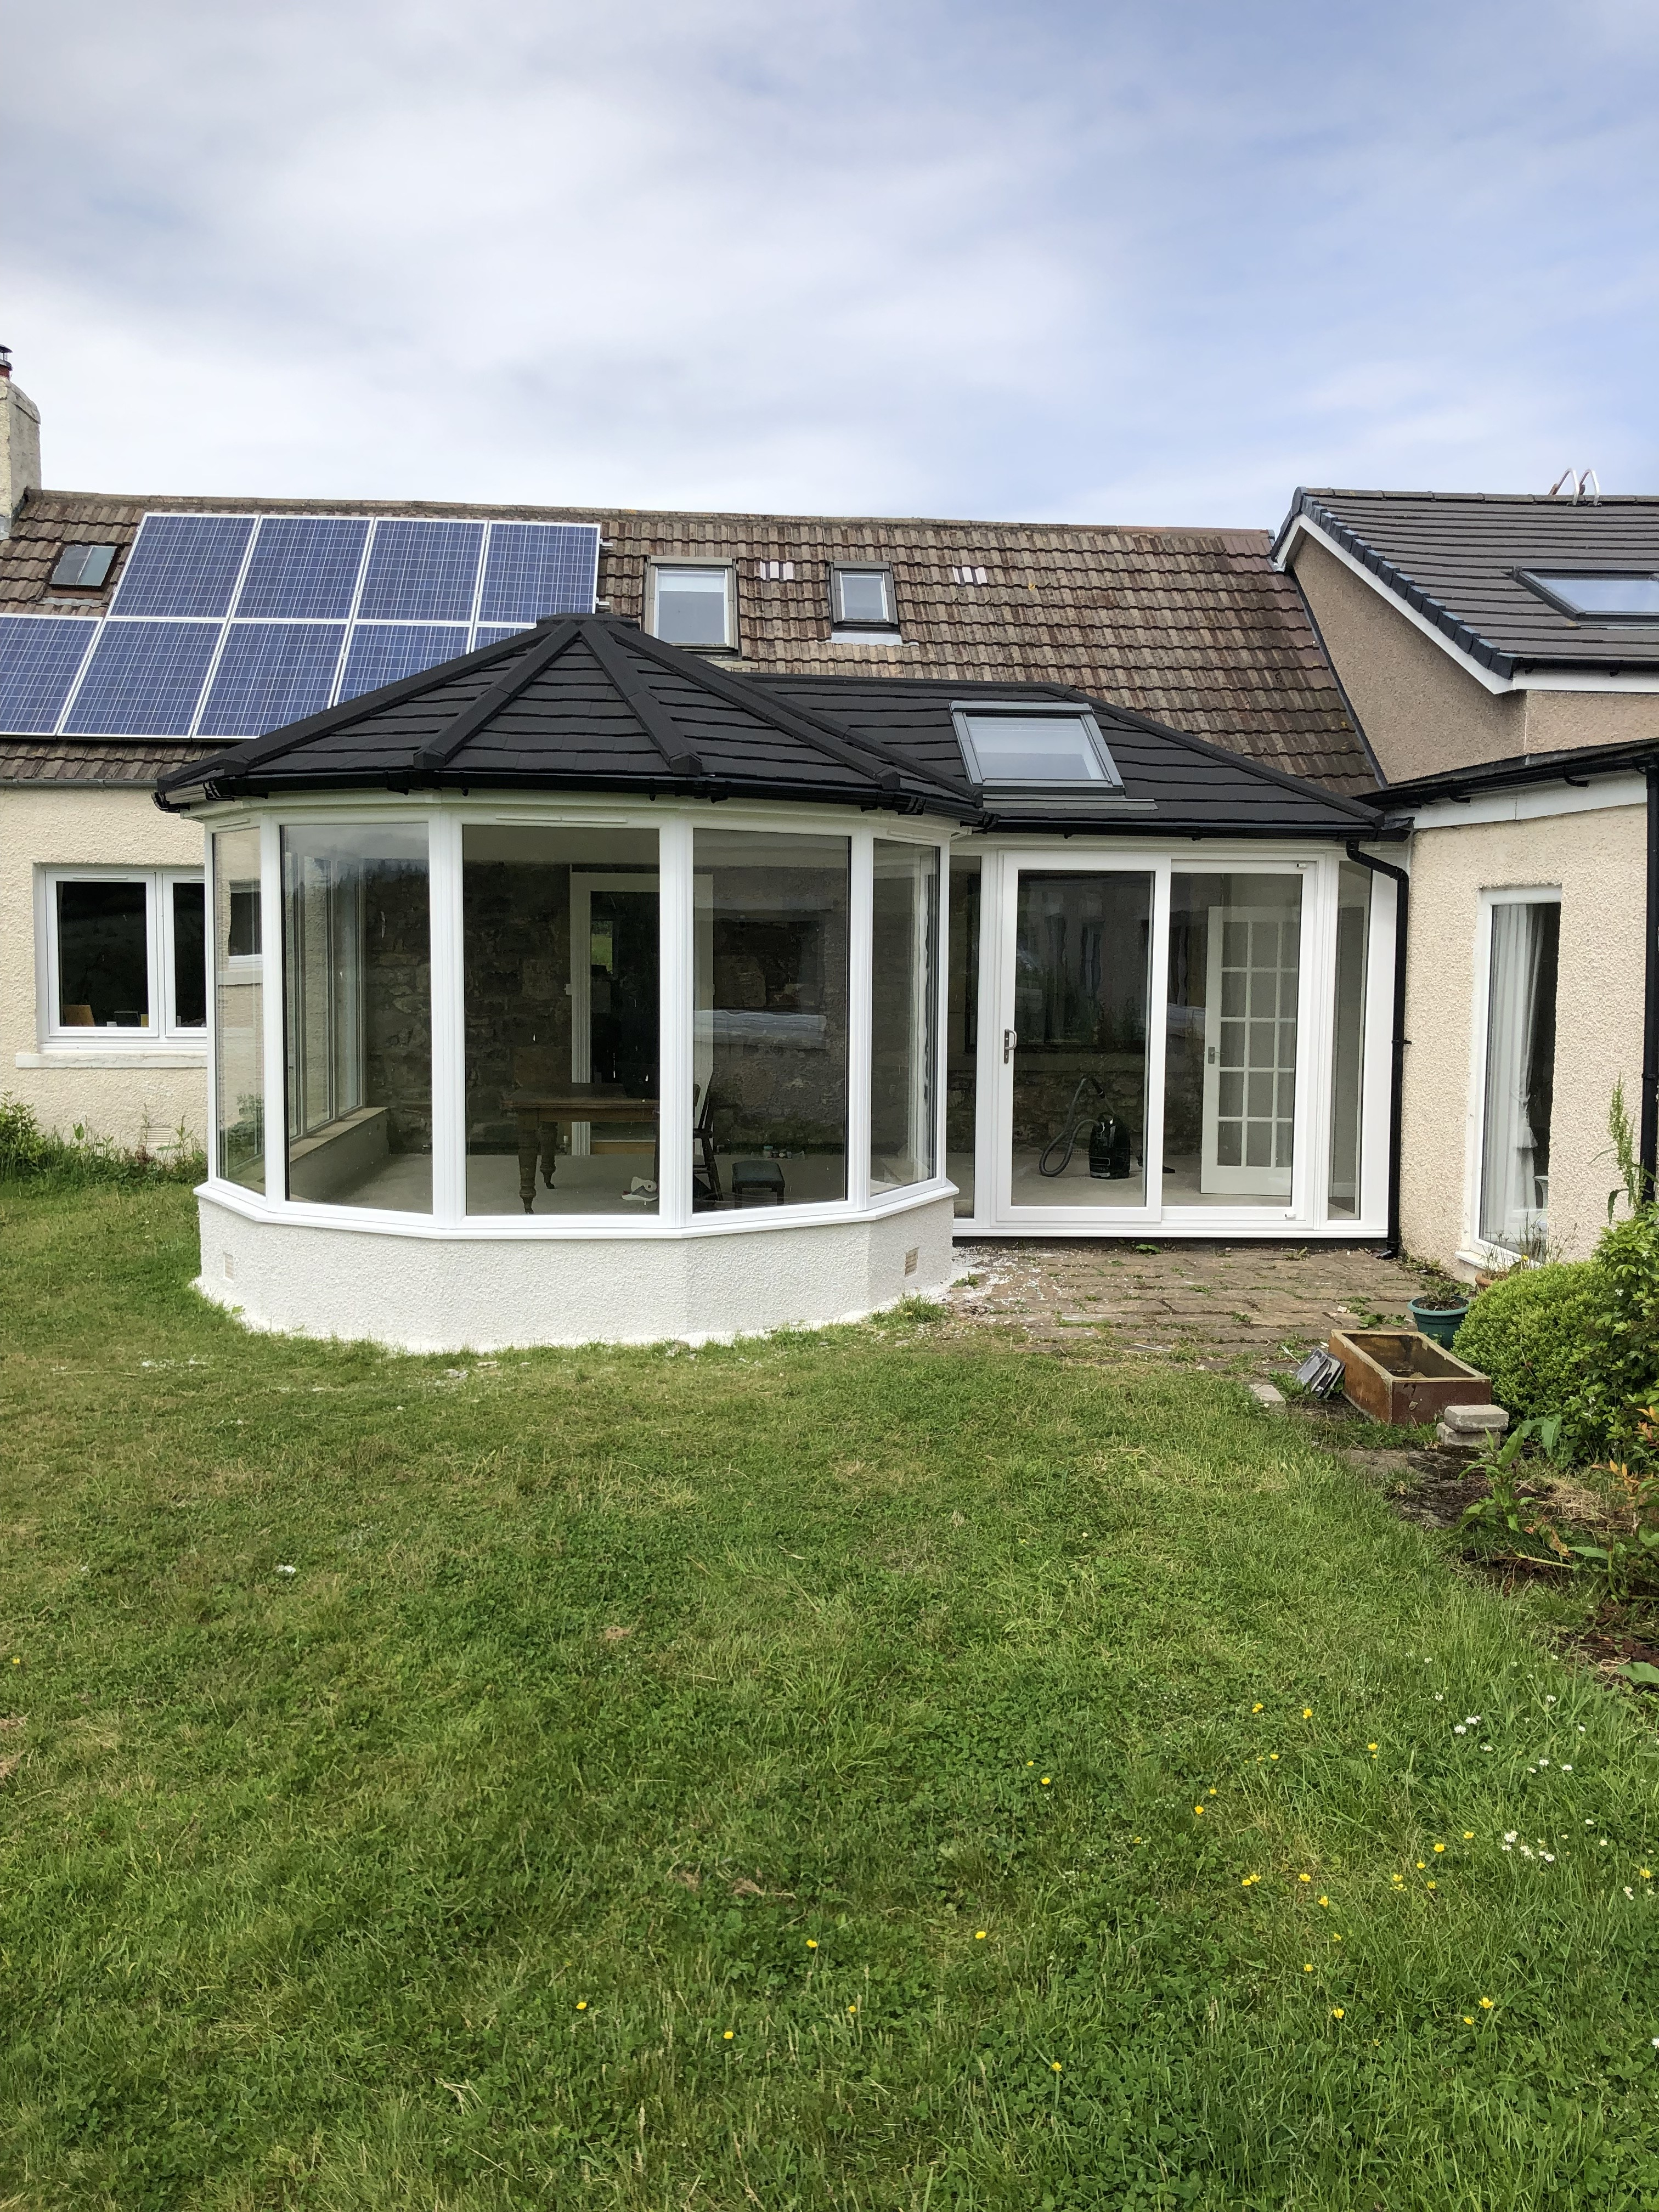 Simply Ideal Home Improvements Supalite Tiled Roof Systems